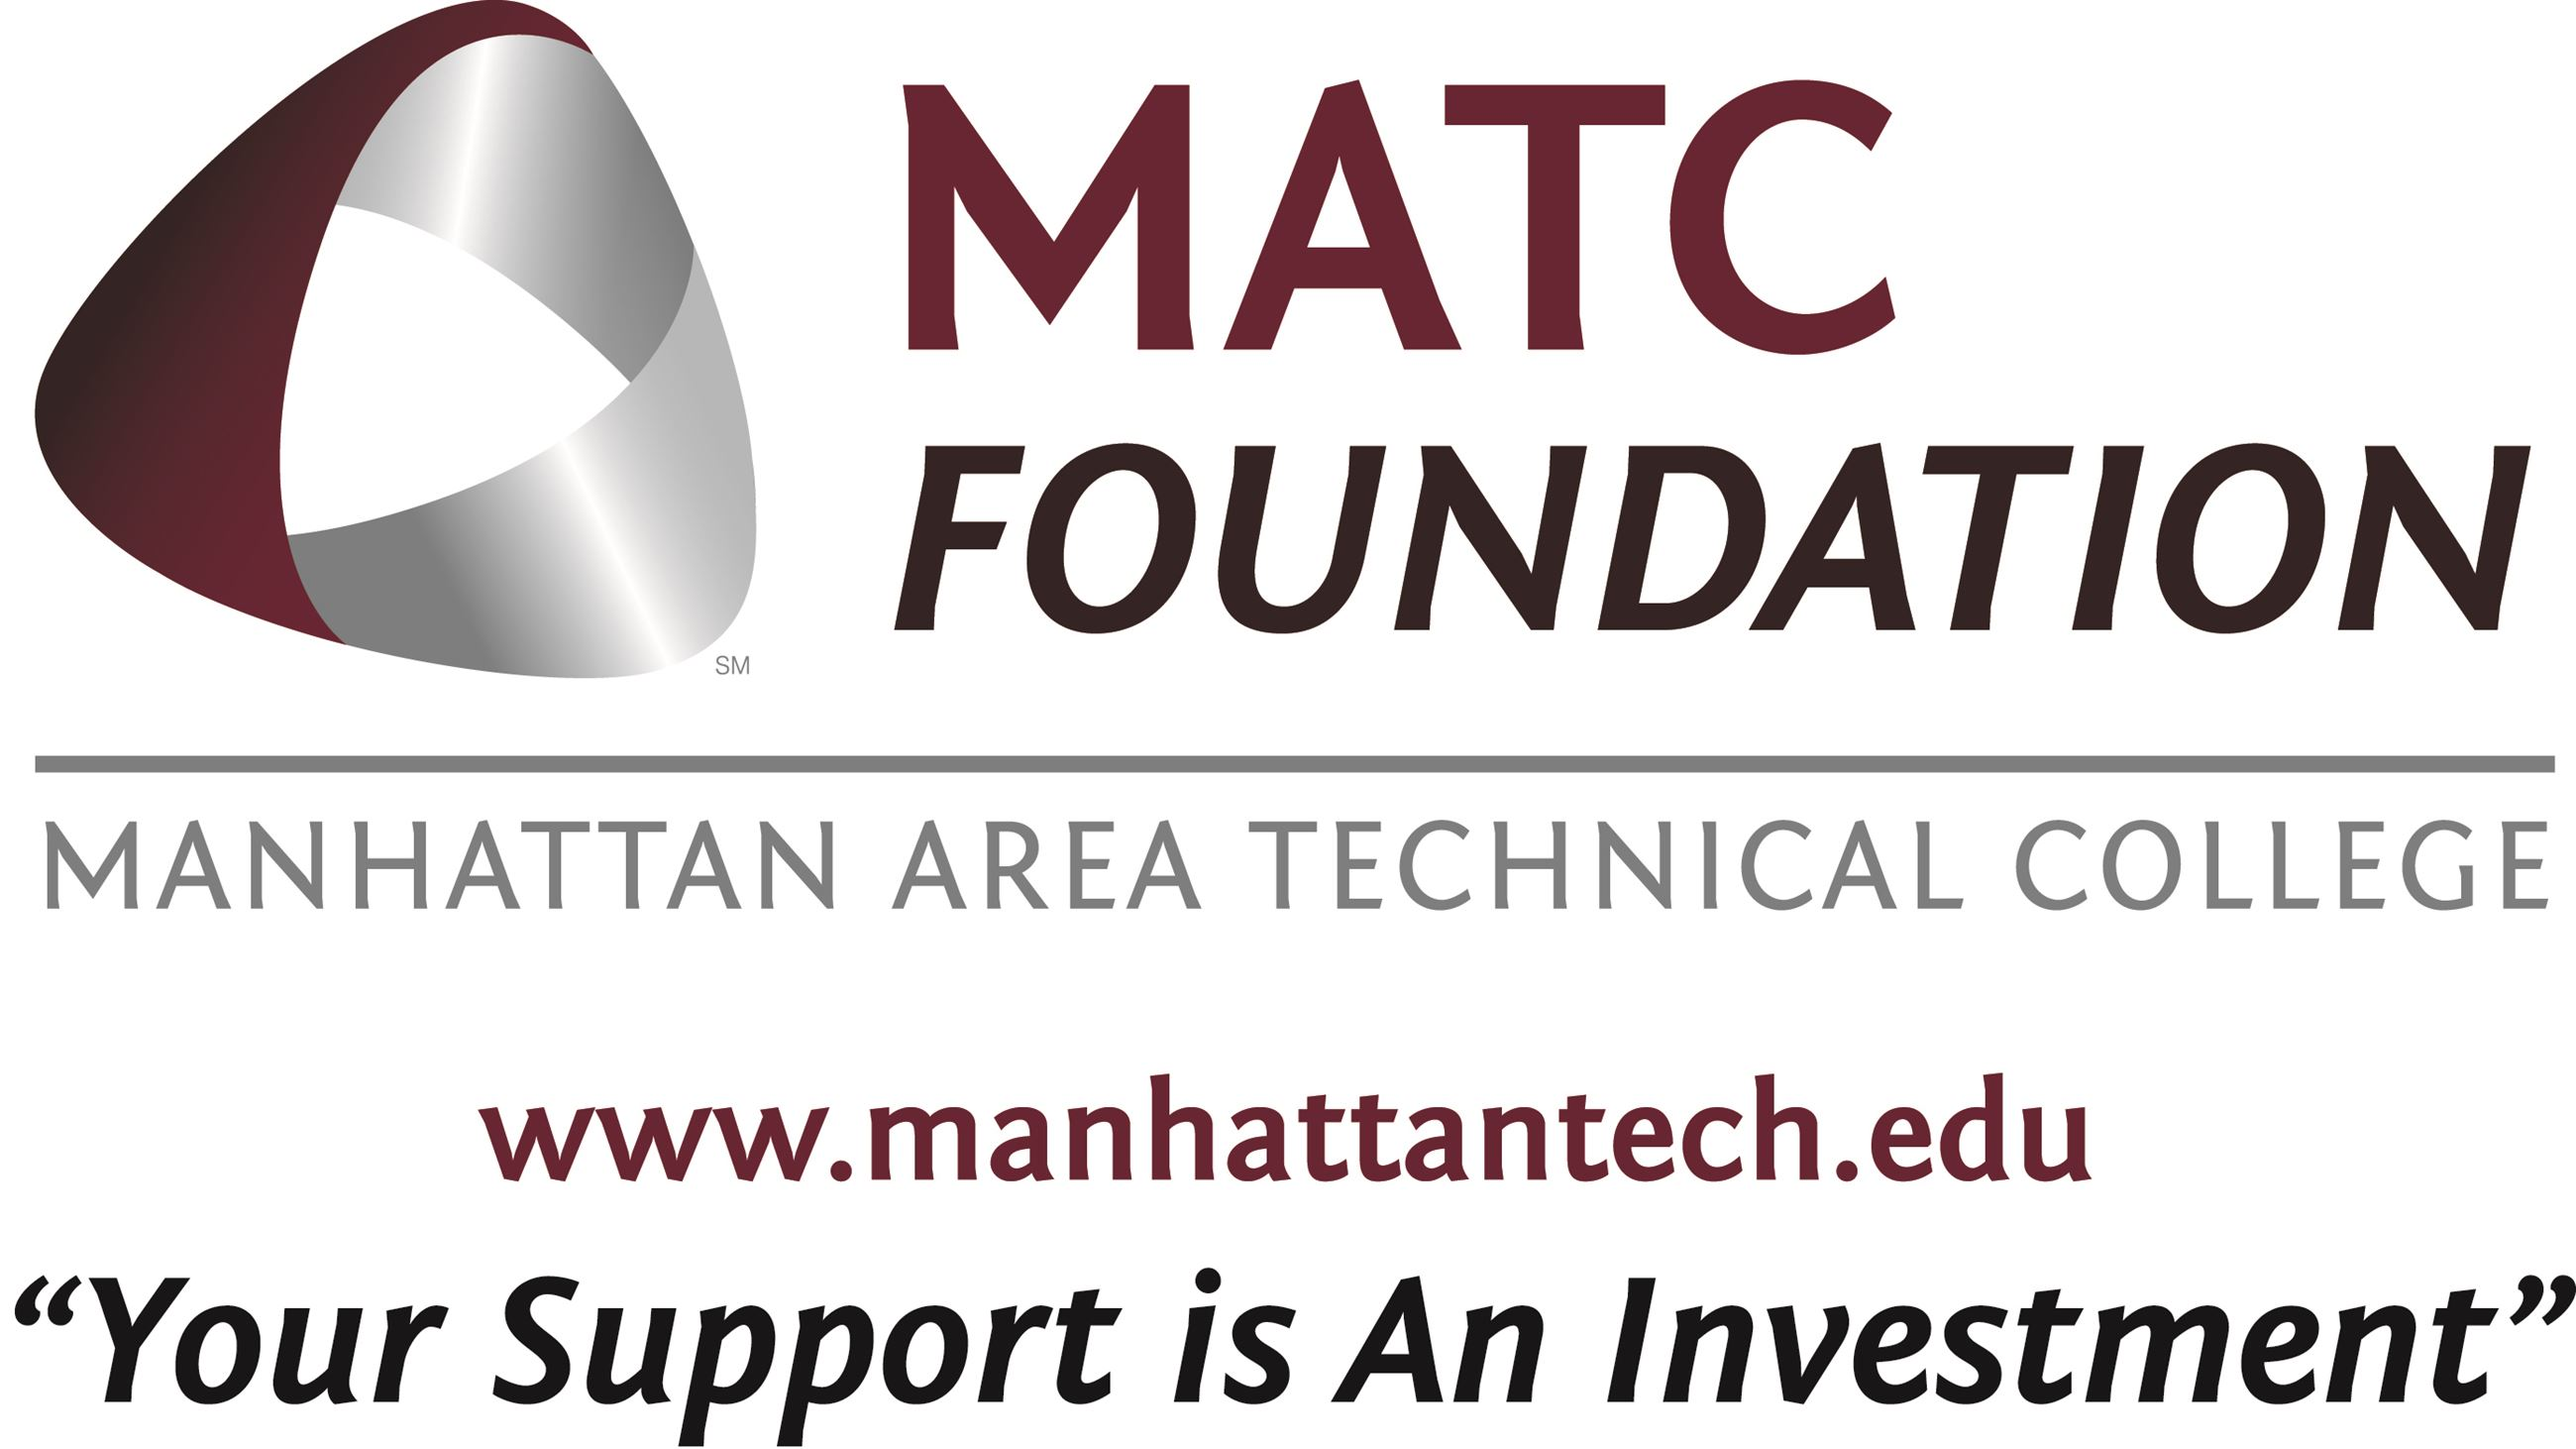 MATC_Foundation Logo w extra